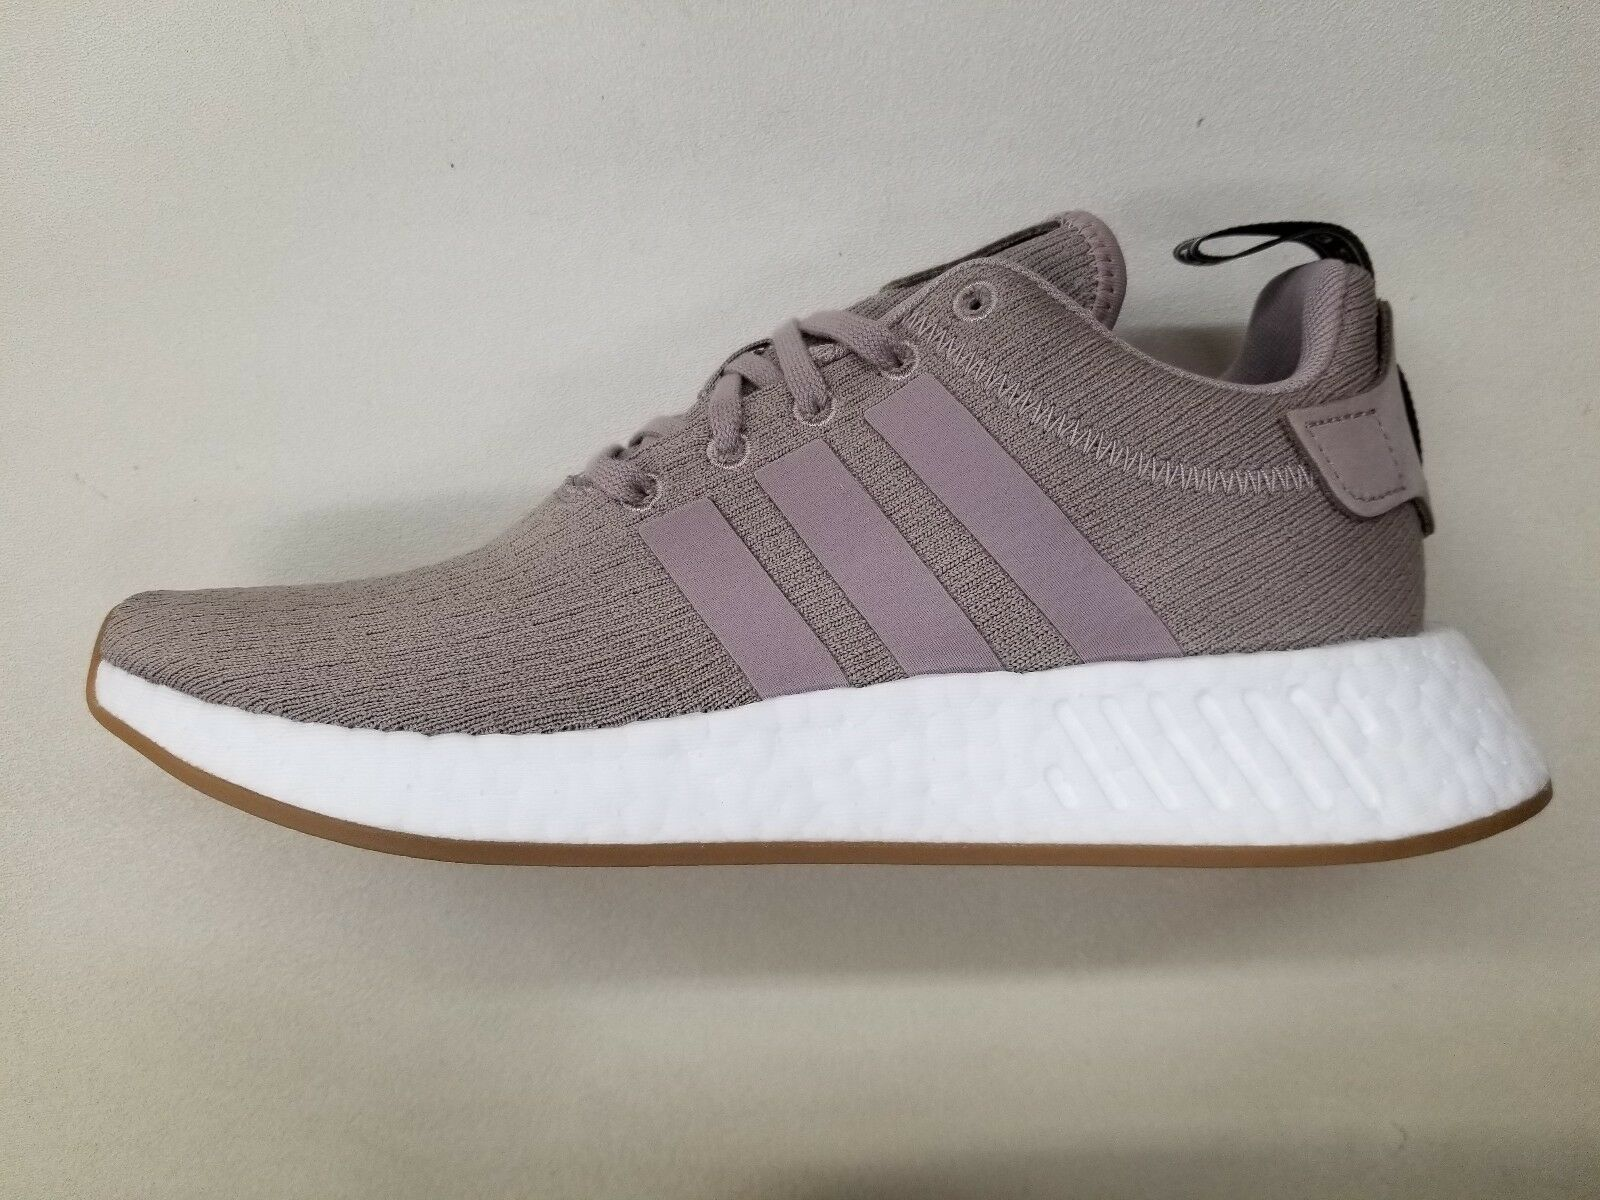 747c05113e54 ADIDAS ORIGINALS NMD_R2 NMD_R2 NMD_R2 SESAME WHITE GUM SOLE MENS SIZE BOOST  SNEAKERS CQ2399 8ffc09